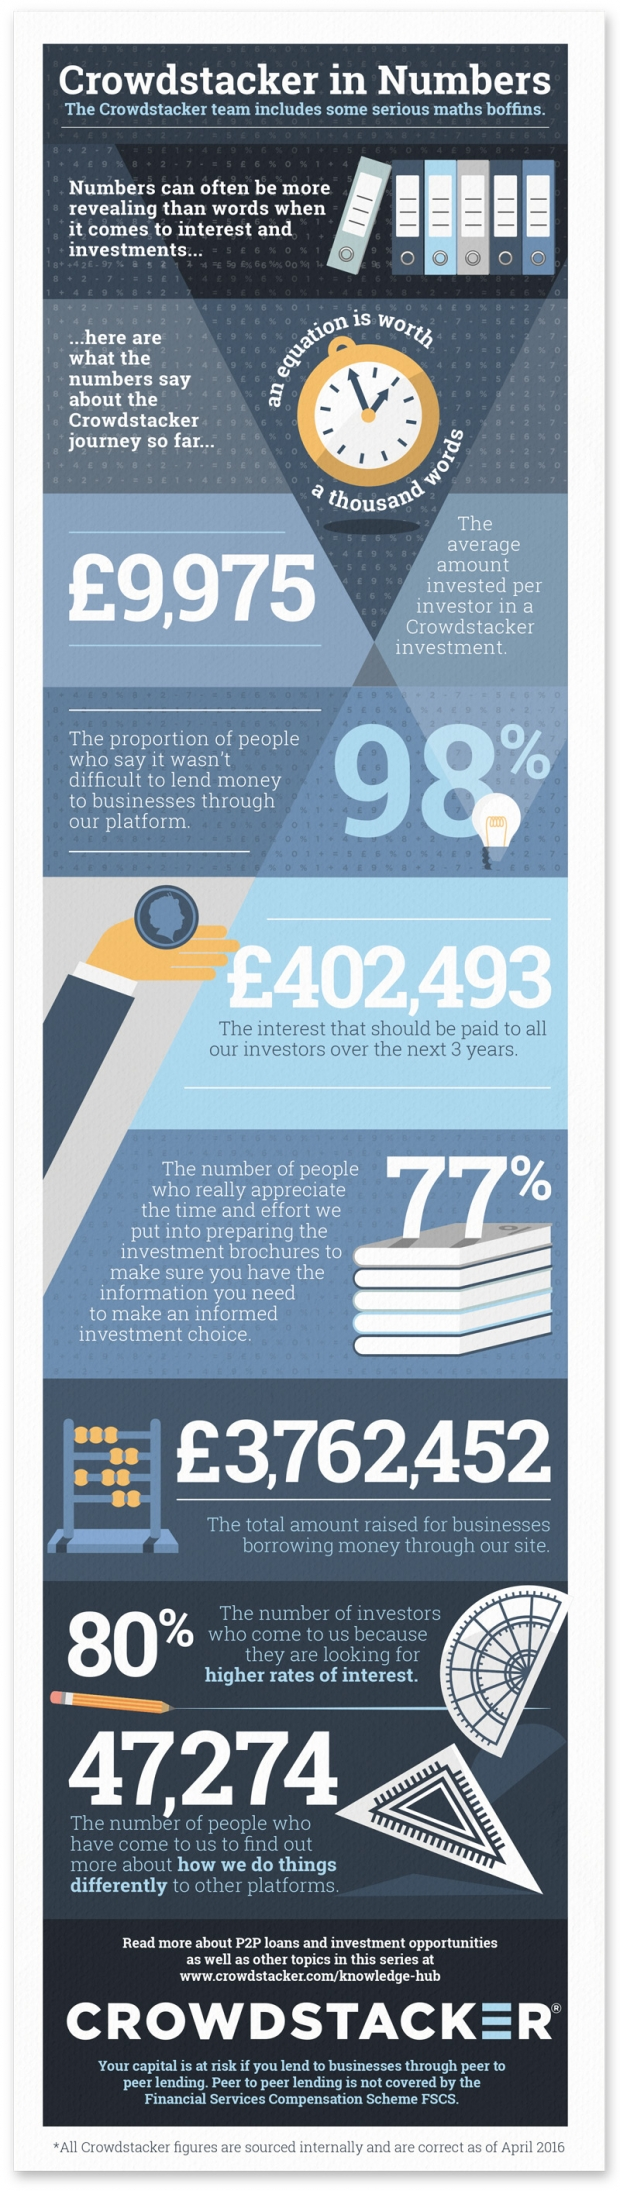 Crowdstacker in numbers infographic - we offer Innovative Finance ISA eligible peer to peer investments in British businesses